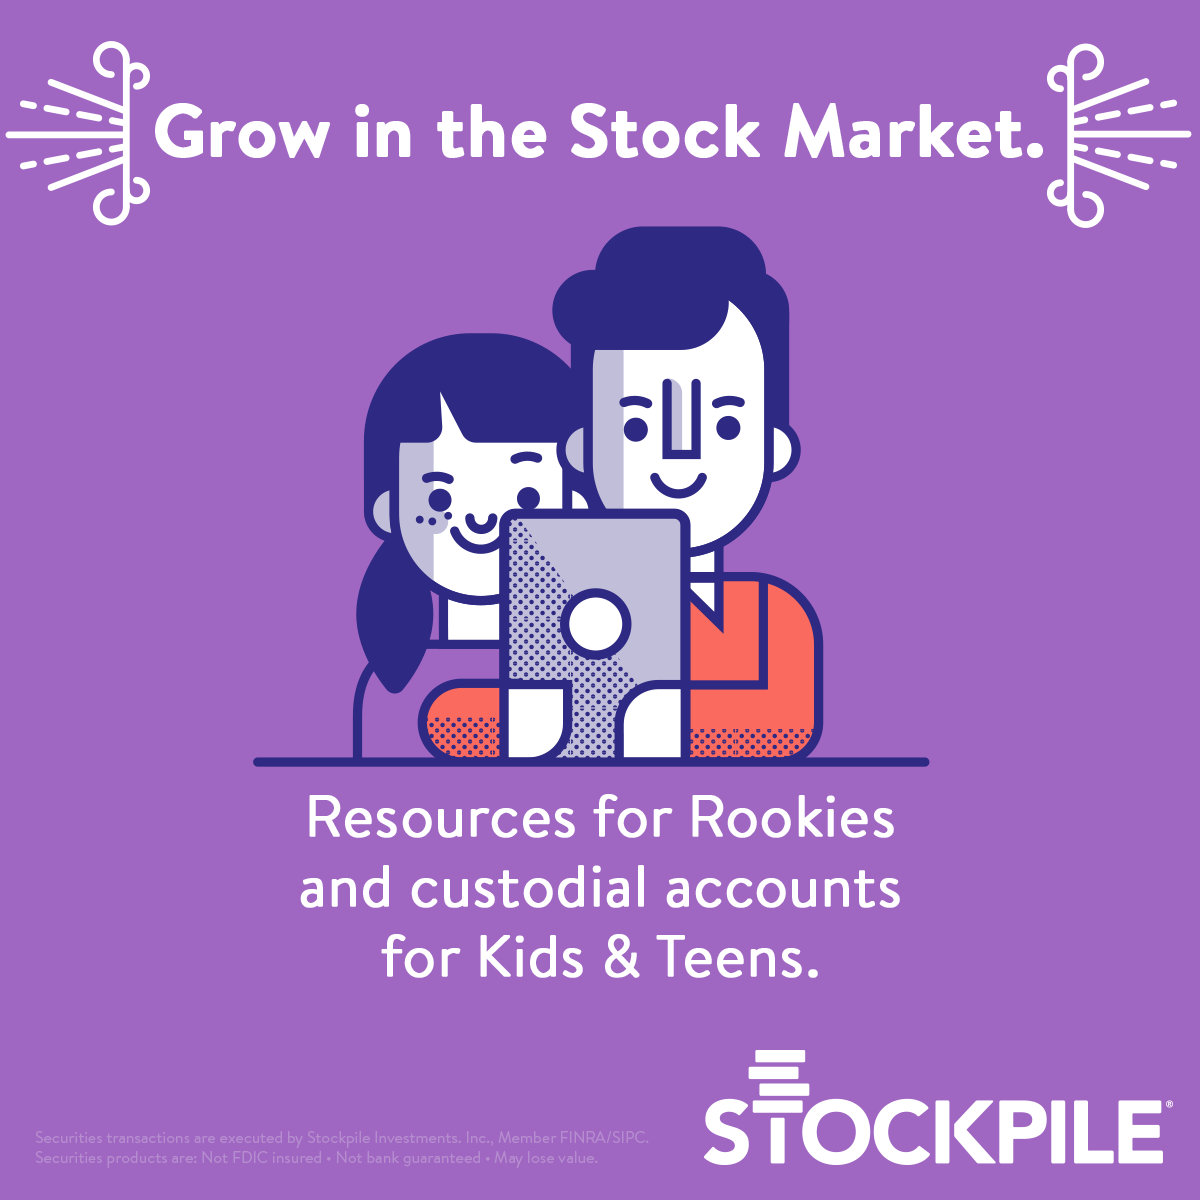 Investing In Stocks For Beginners Learn To Invest With Stockpile